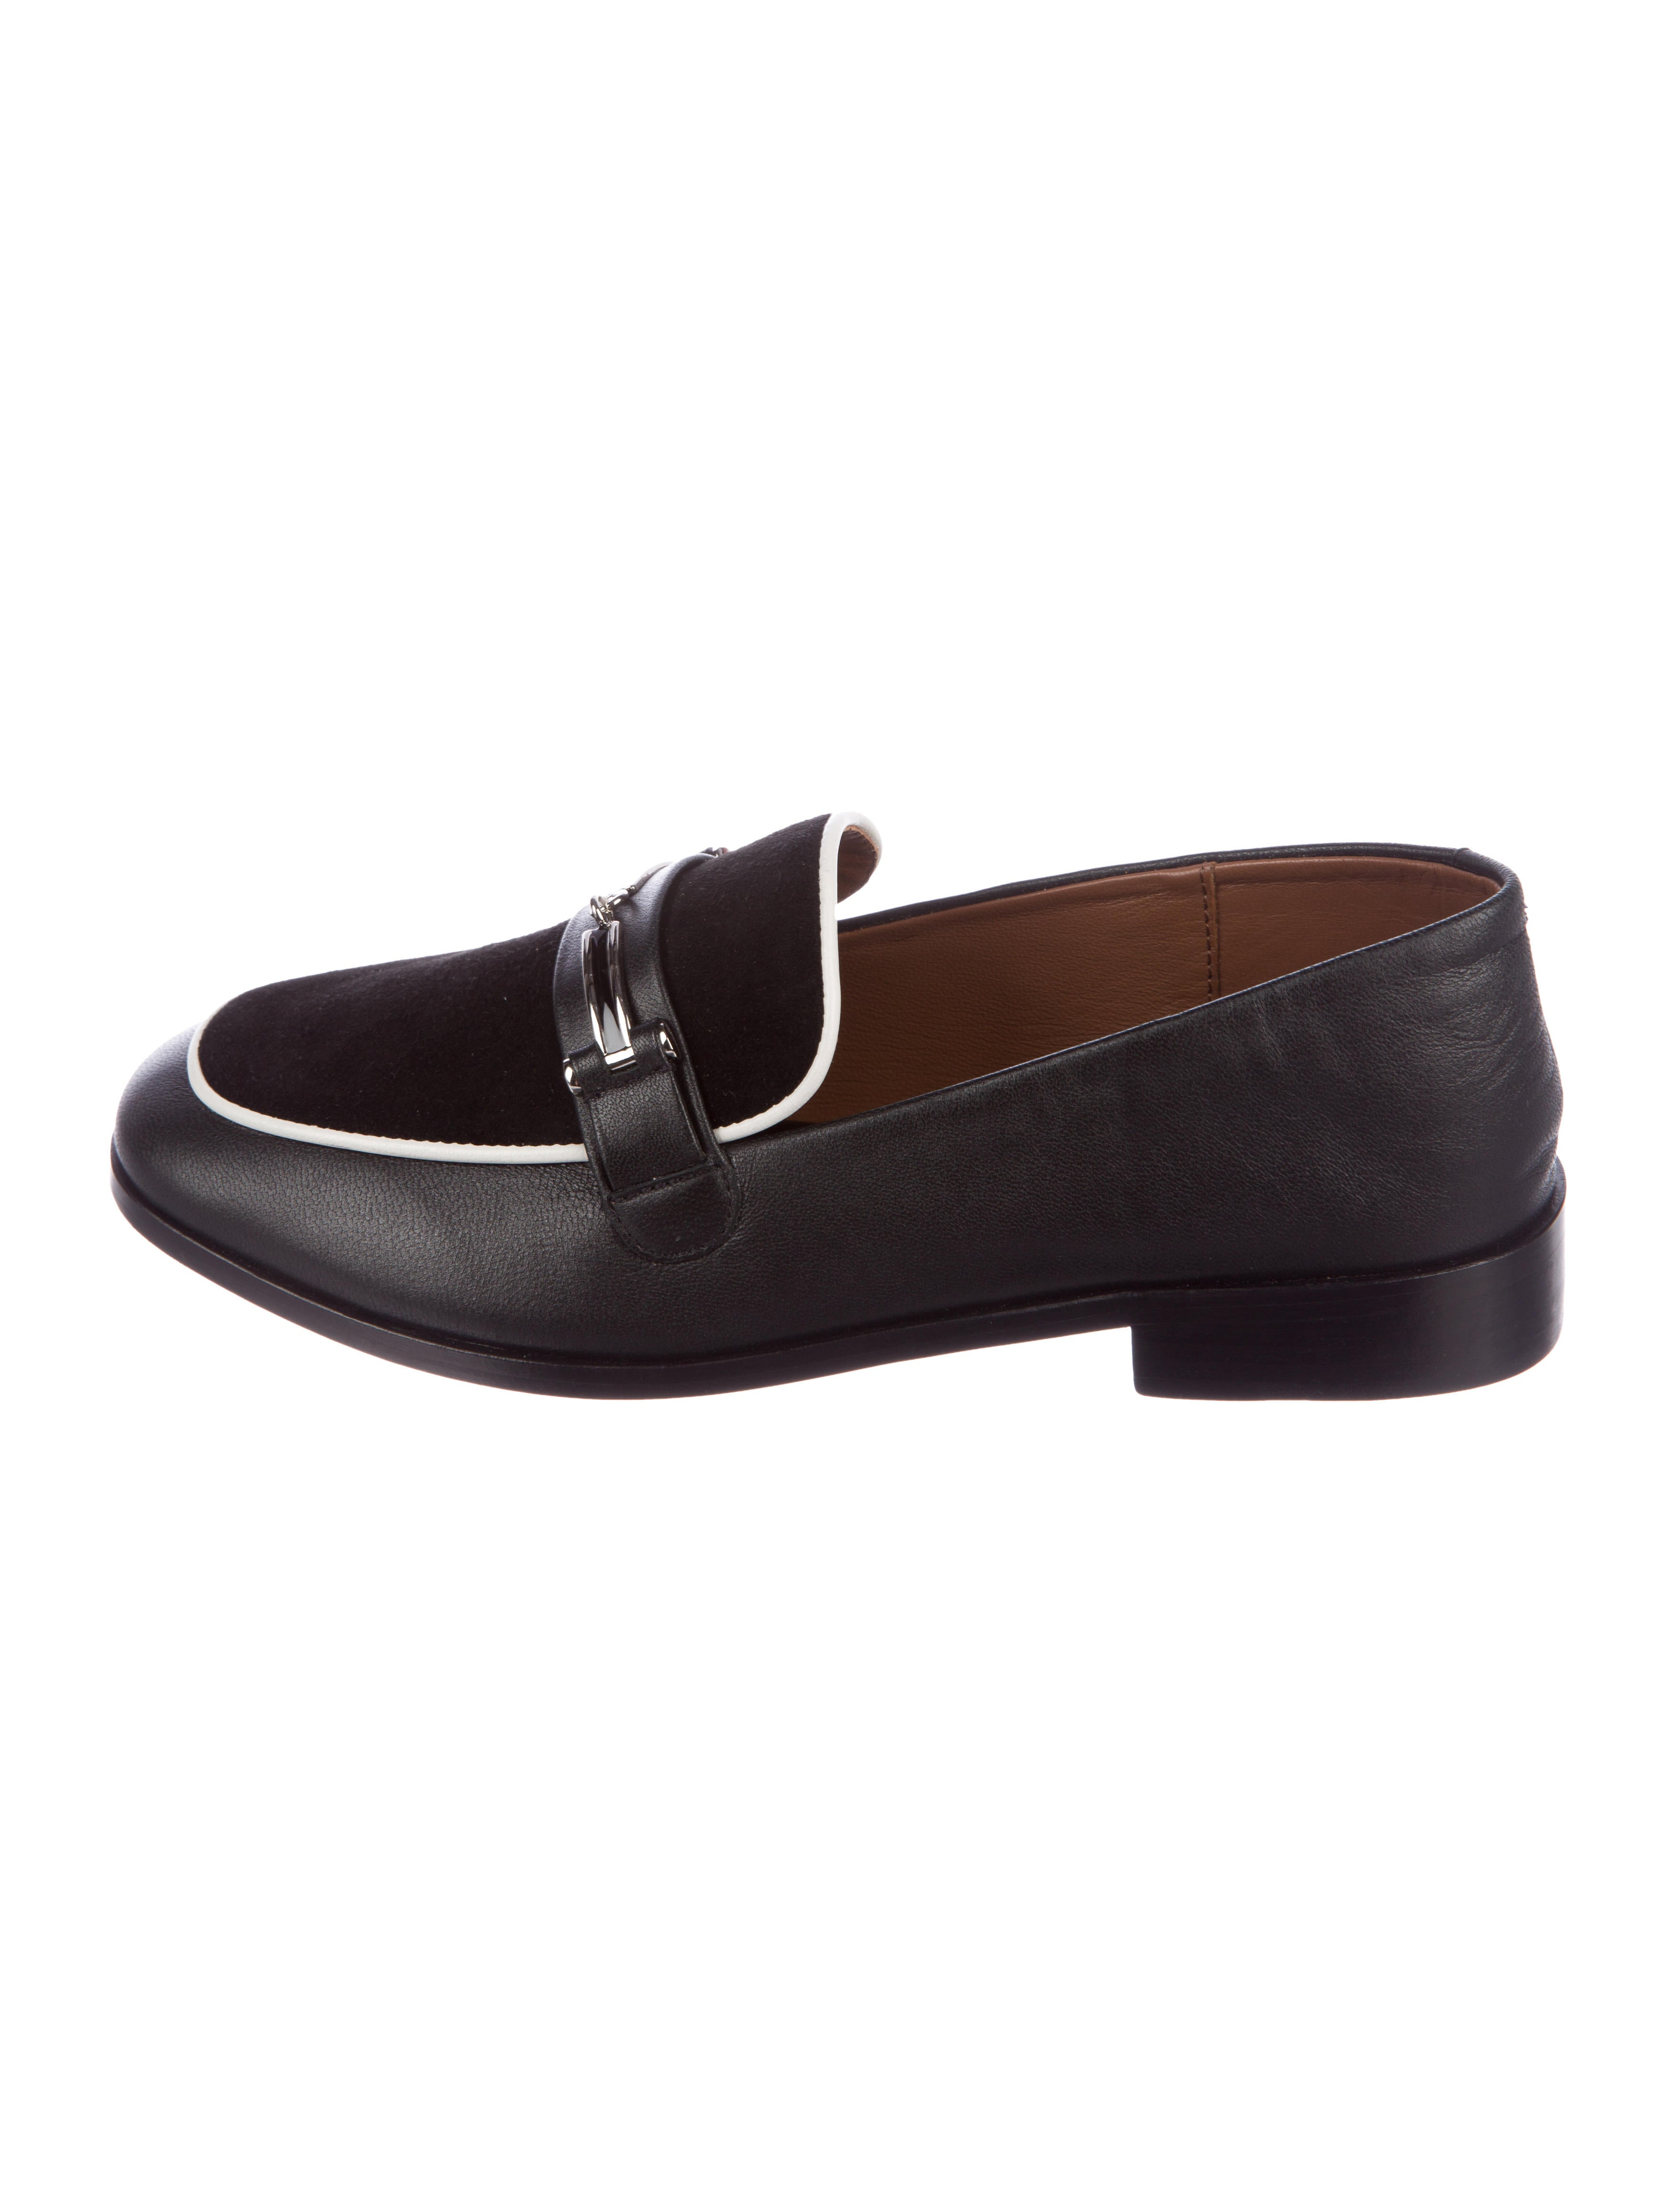 wide range of sale online NewbarK Melanie Square-Toe Loafers outlet with credit card QxgyC5